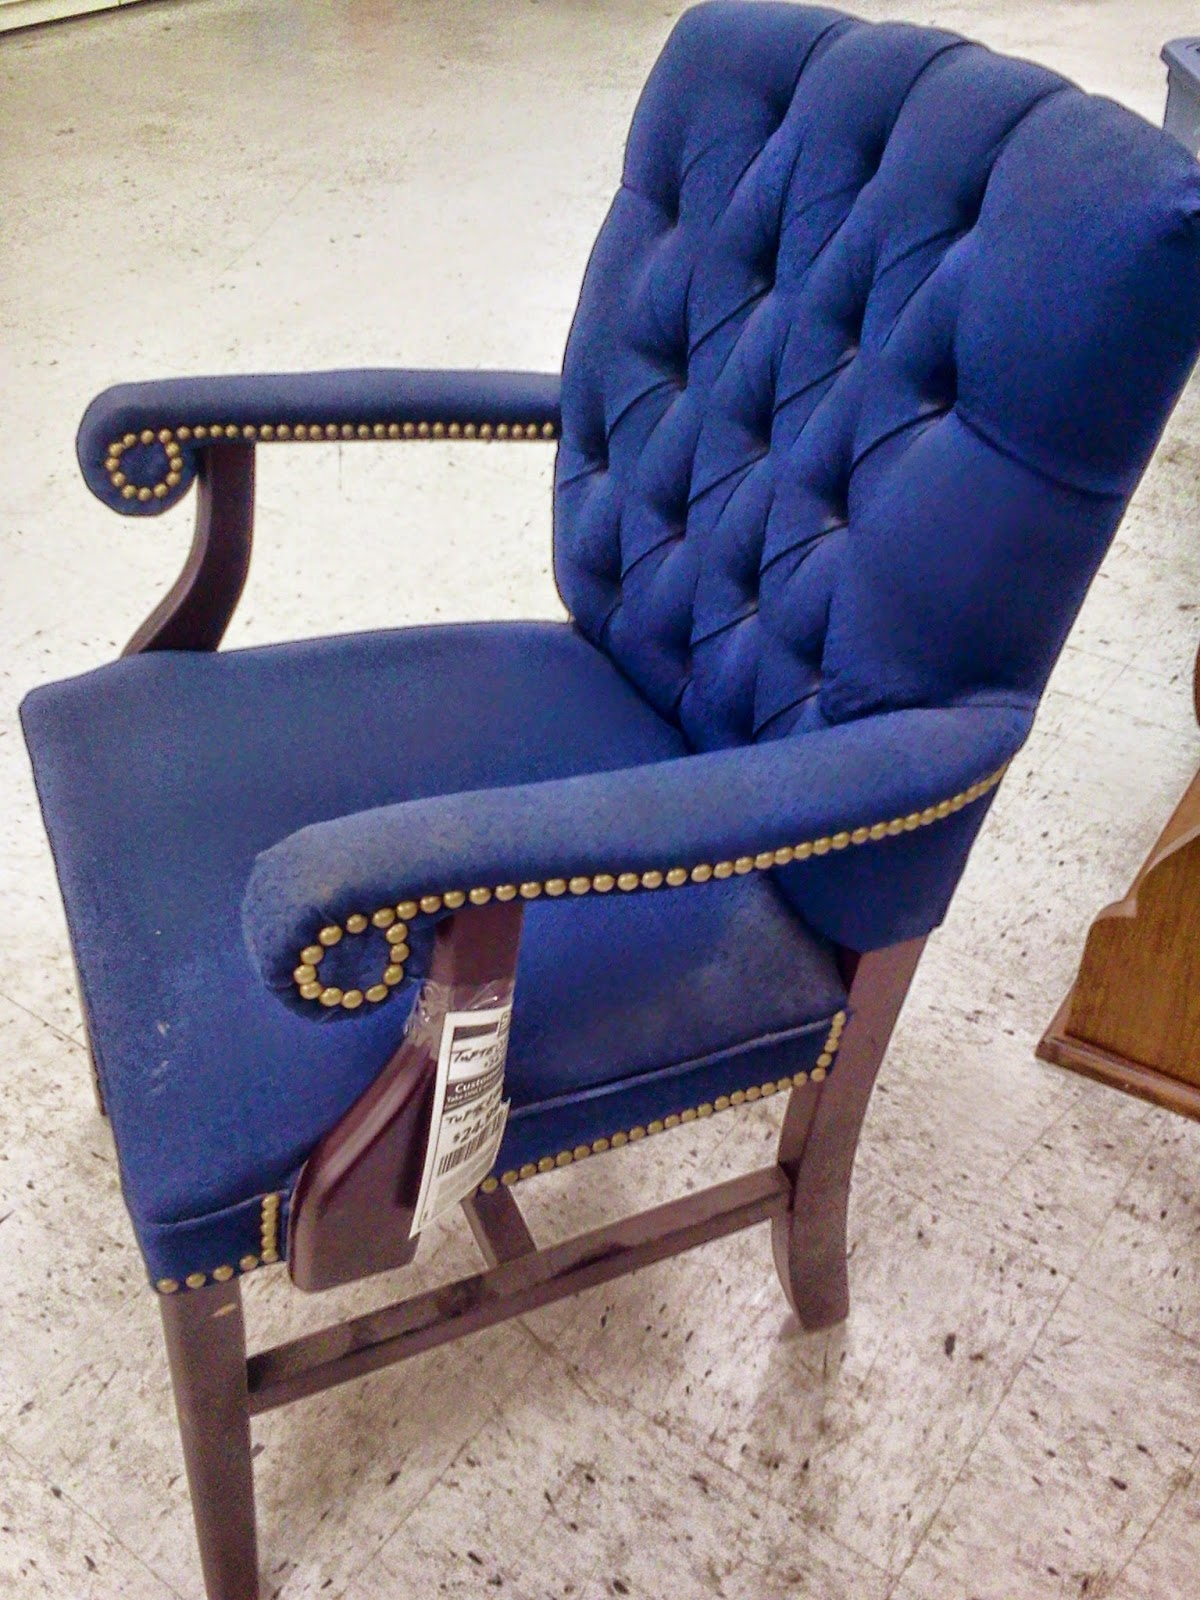 Tufted Blue Chair Posture Pleaser Elite Decorated Chaos With Nail Head Trim